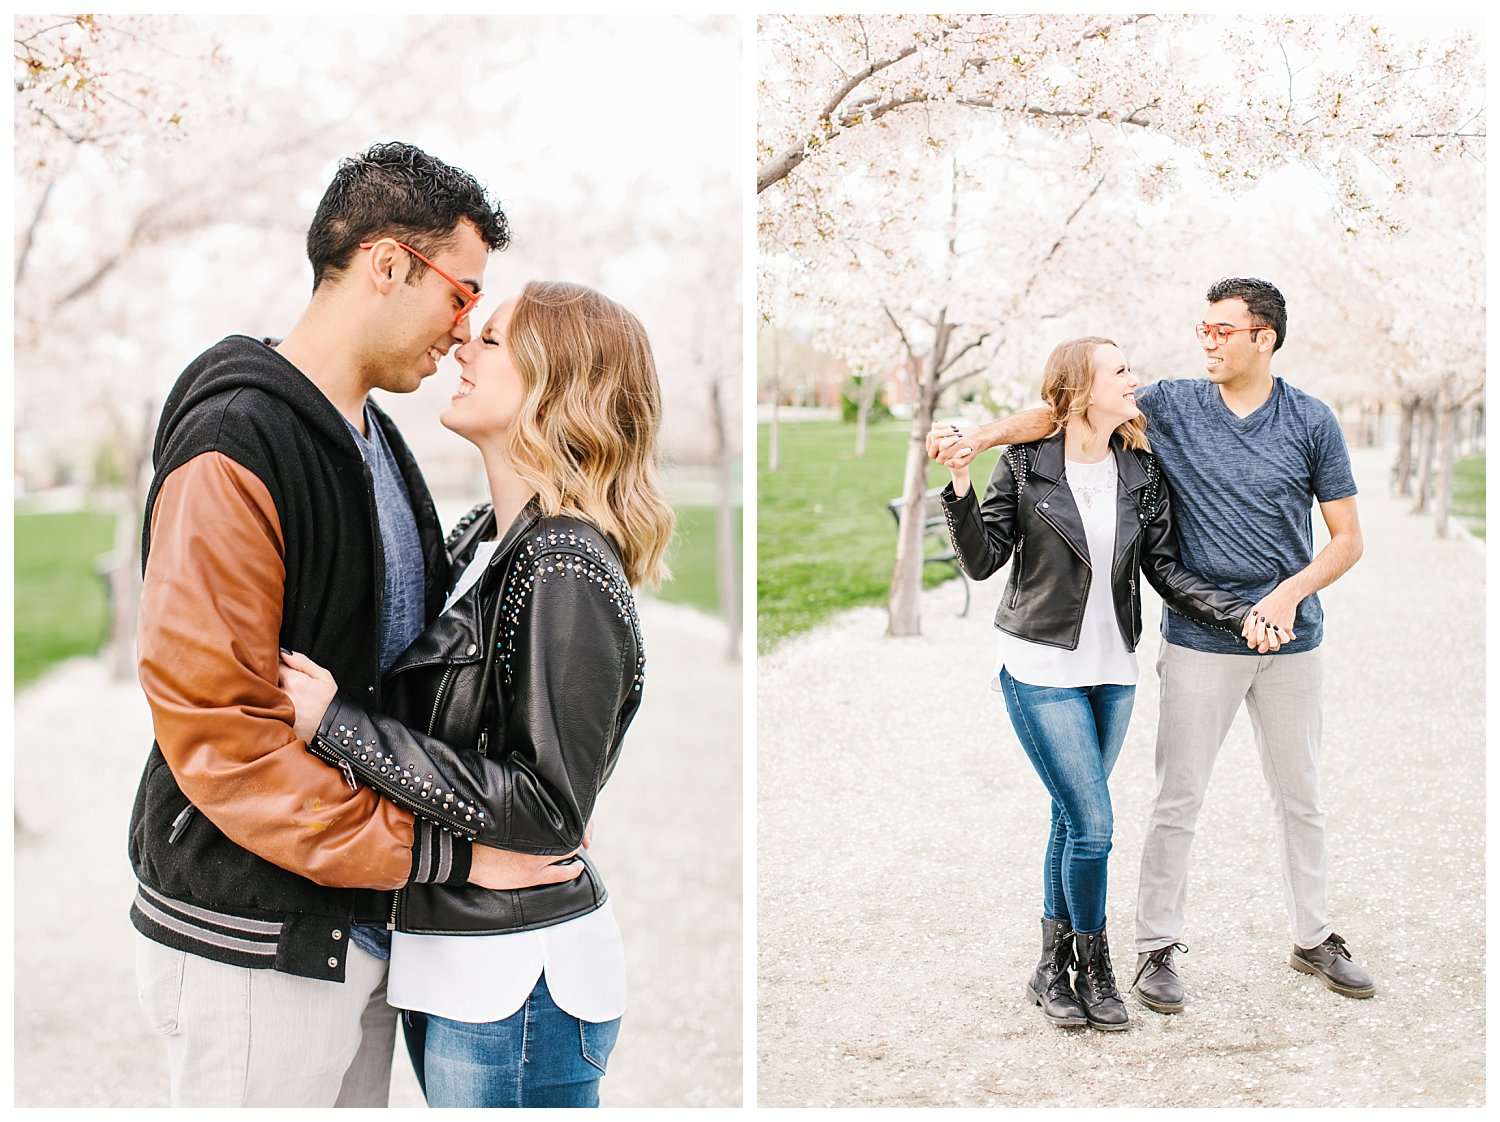 Spring Blossoms Engagement Session 3